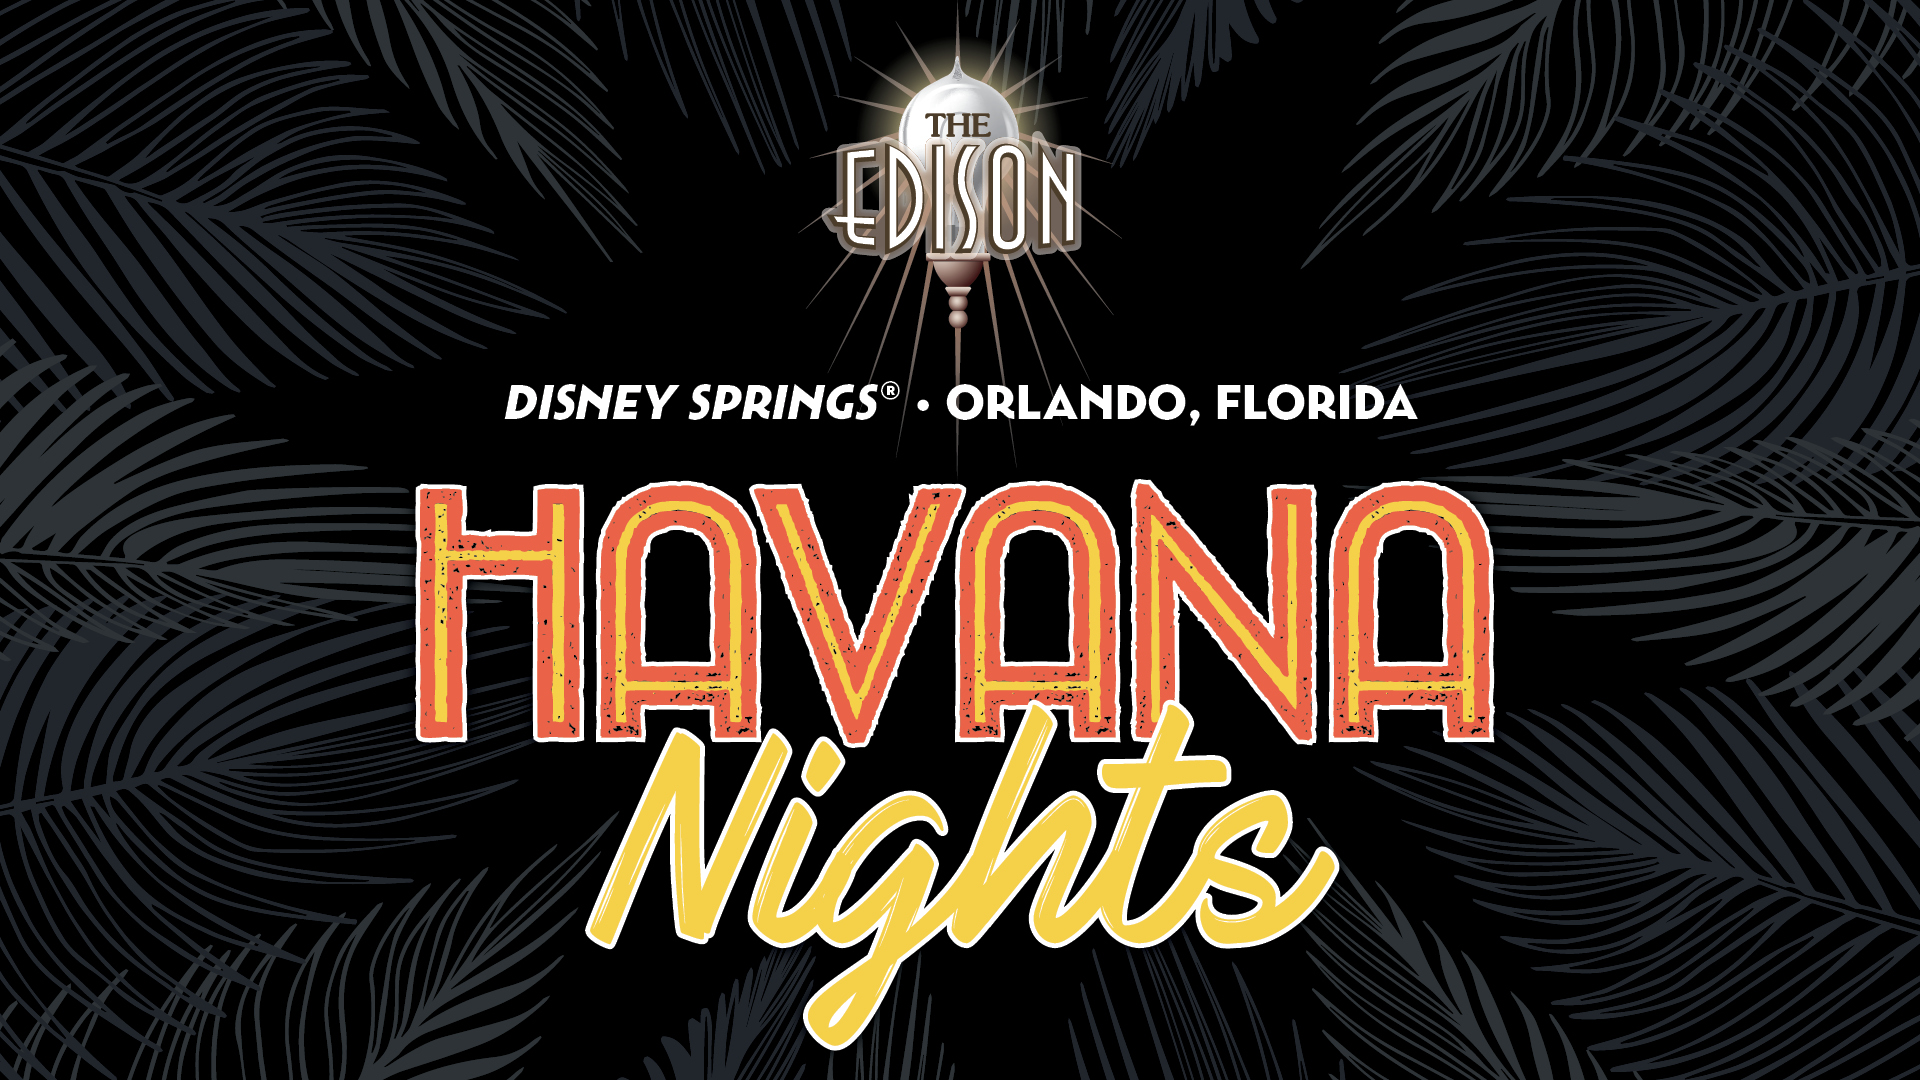 Havana Nights at The Edison combines Latin music, salsa dancing, and specialty craft cocktails